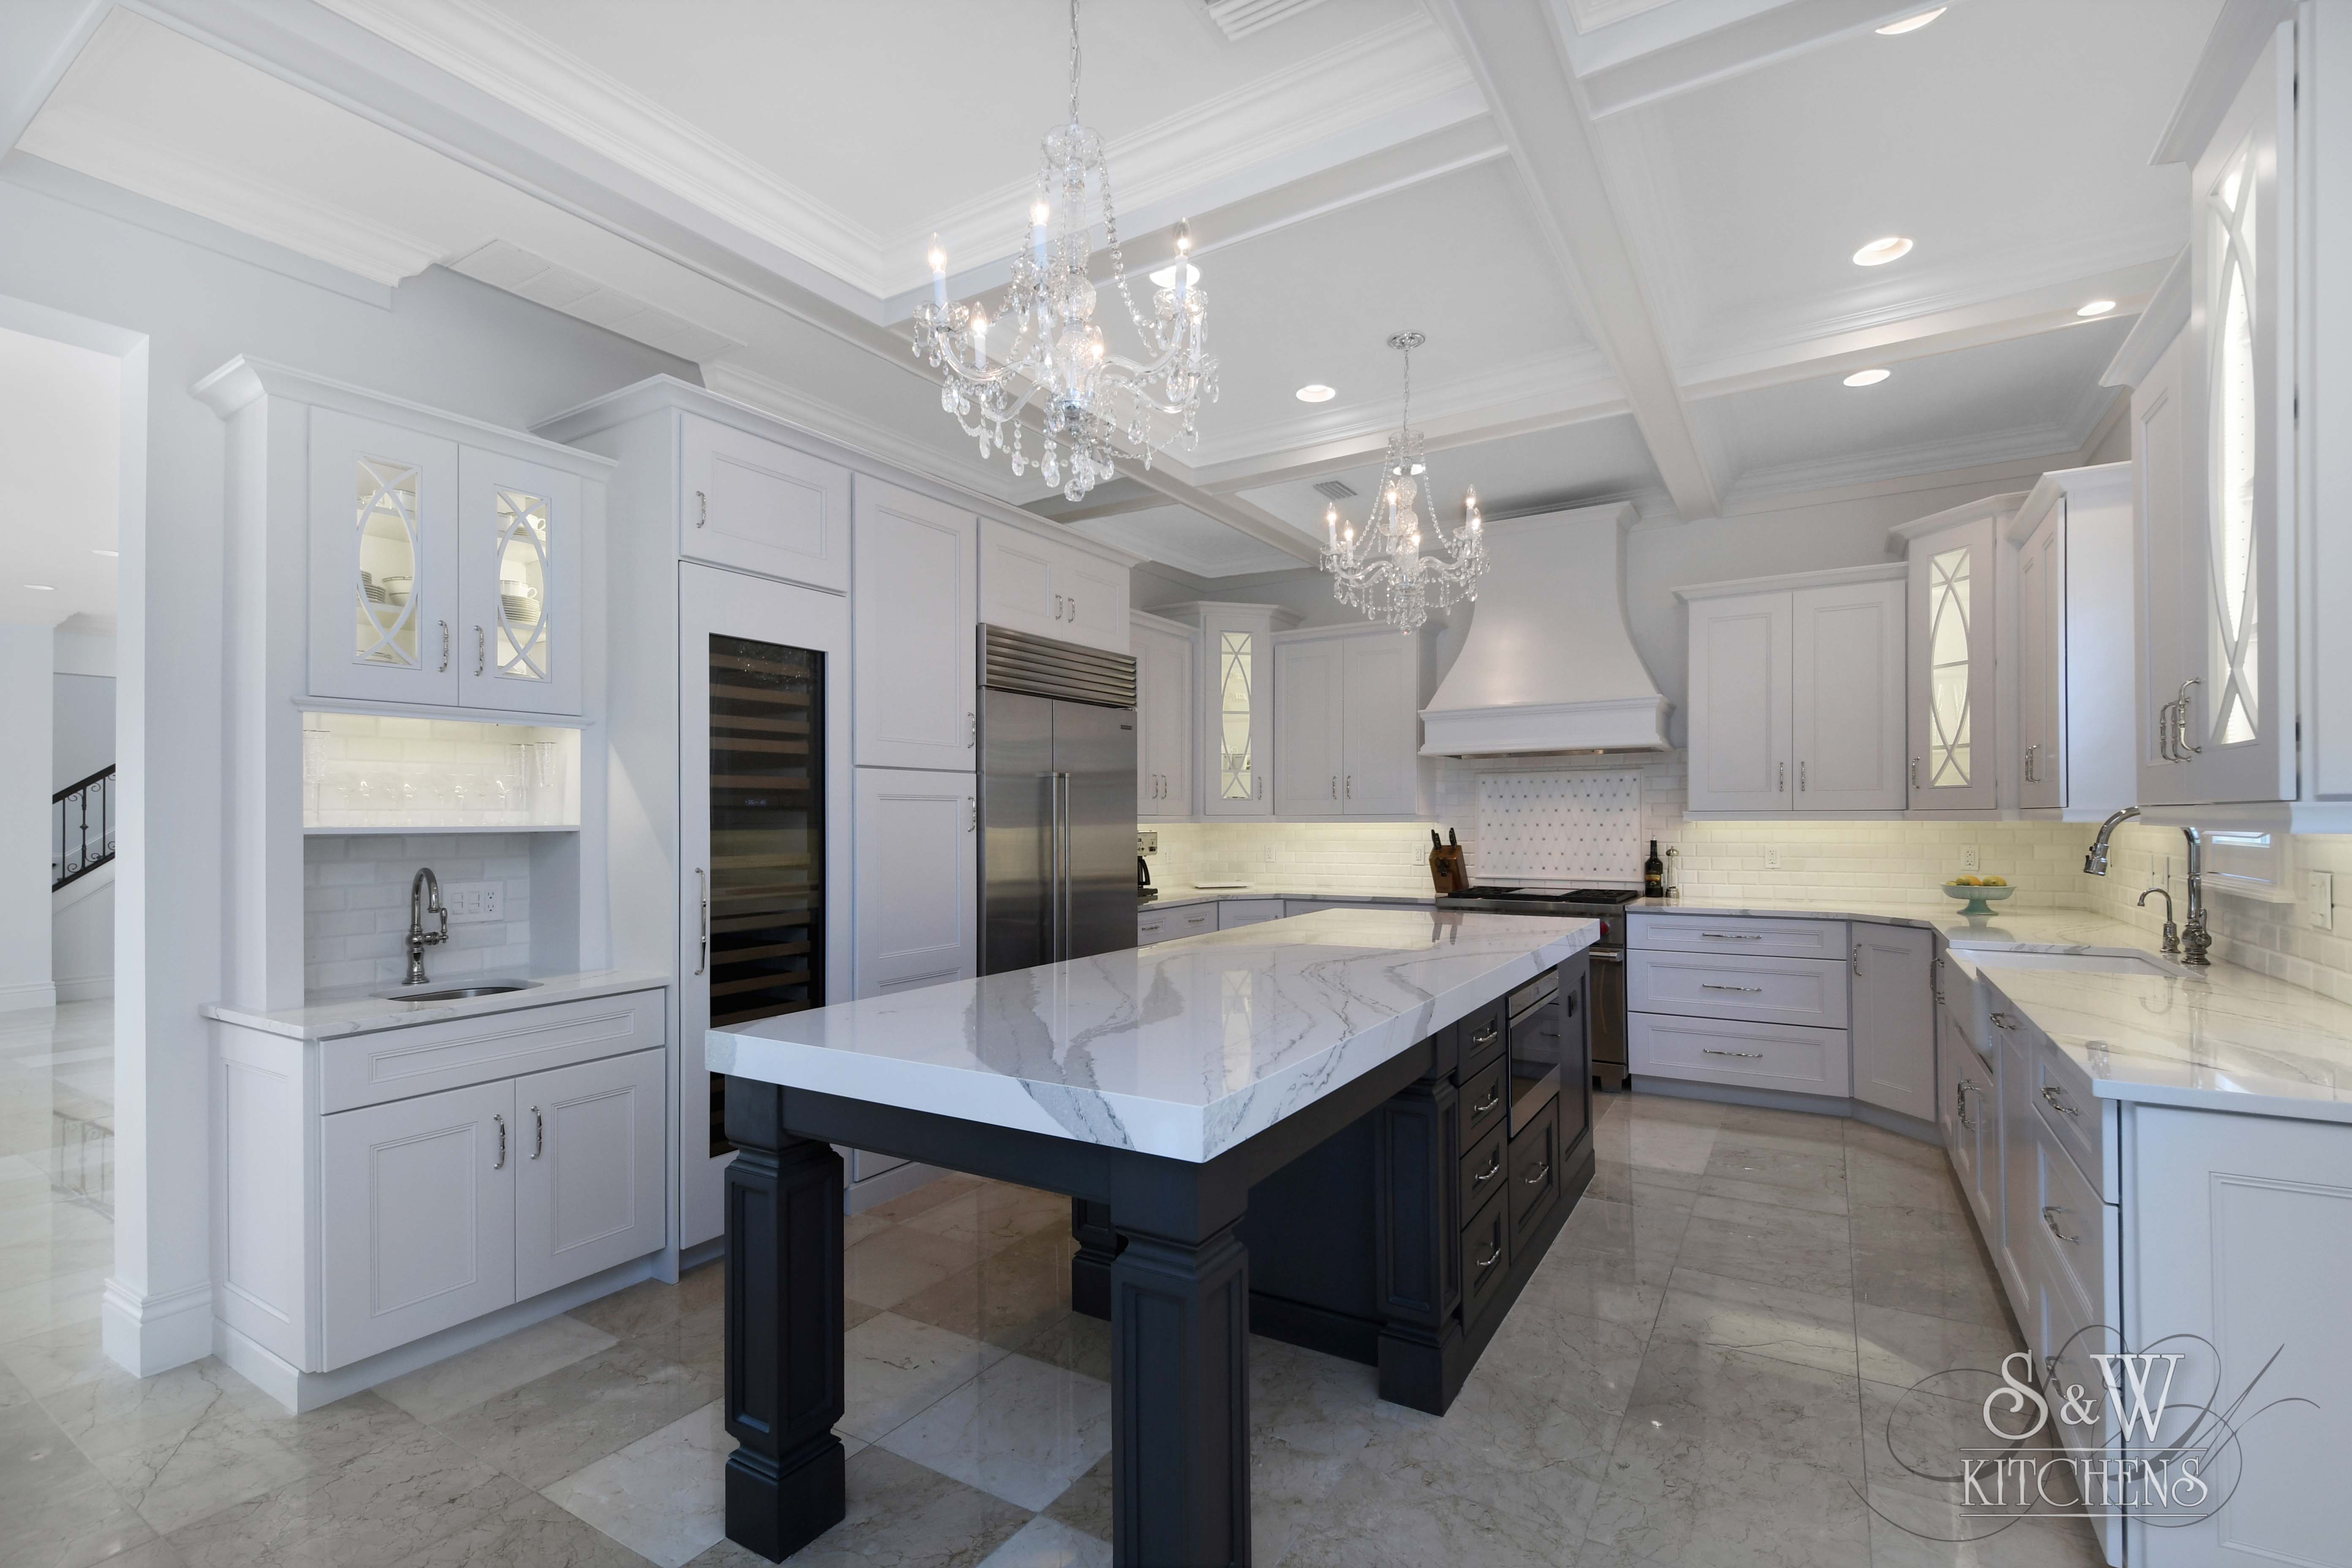 glickman_kitchen_007.jpg